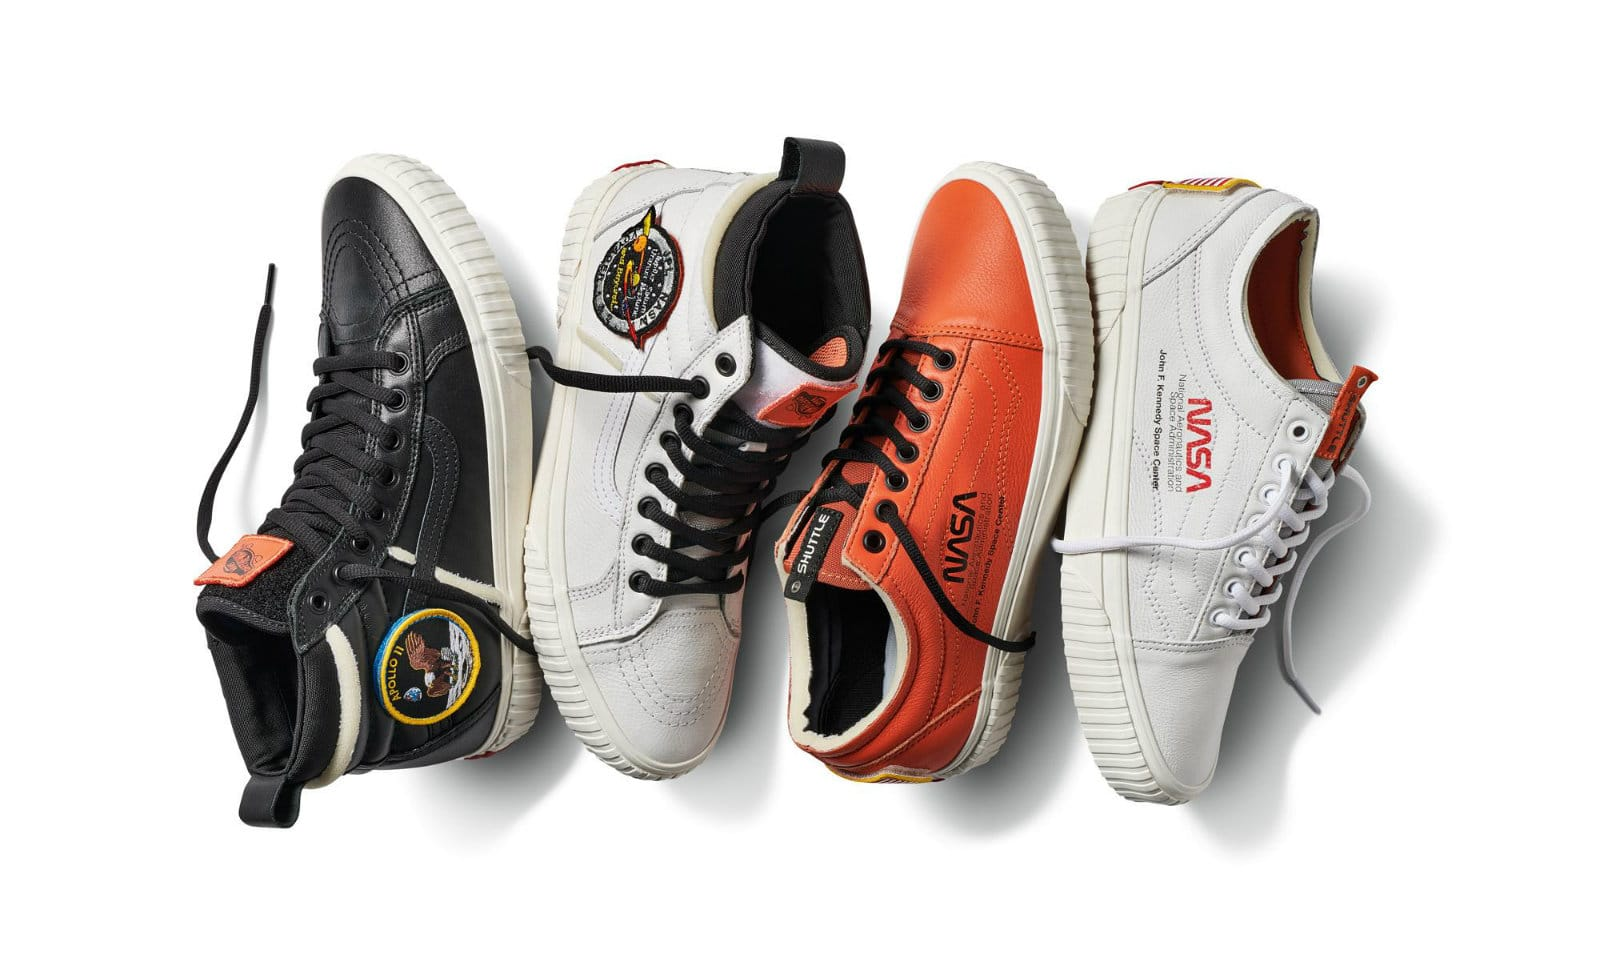 f2661f103b Vans  NASA collection is built for sneakerheads and space nerds